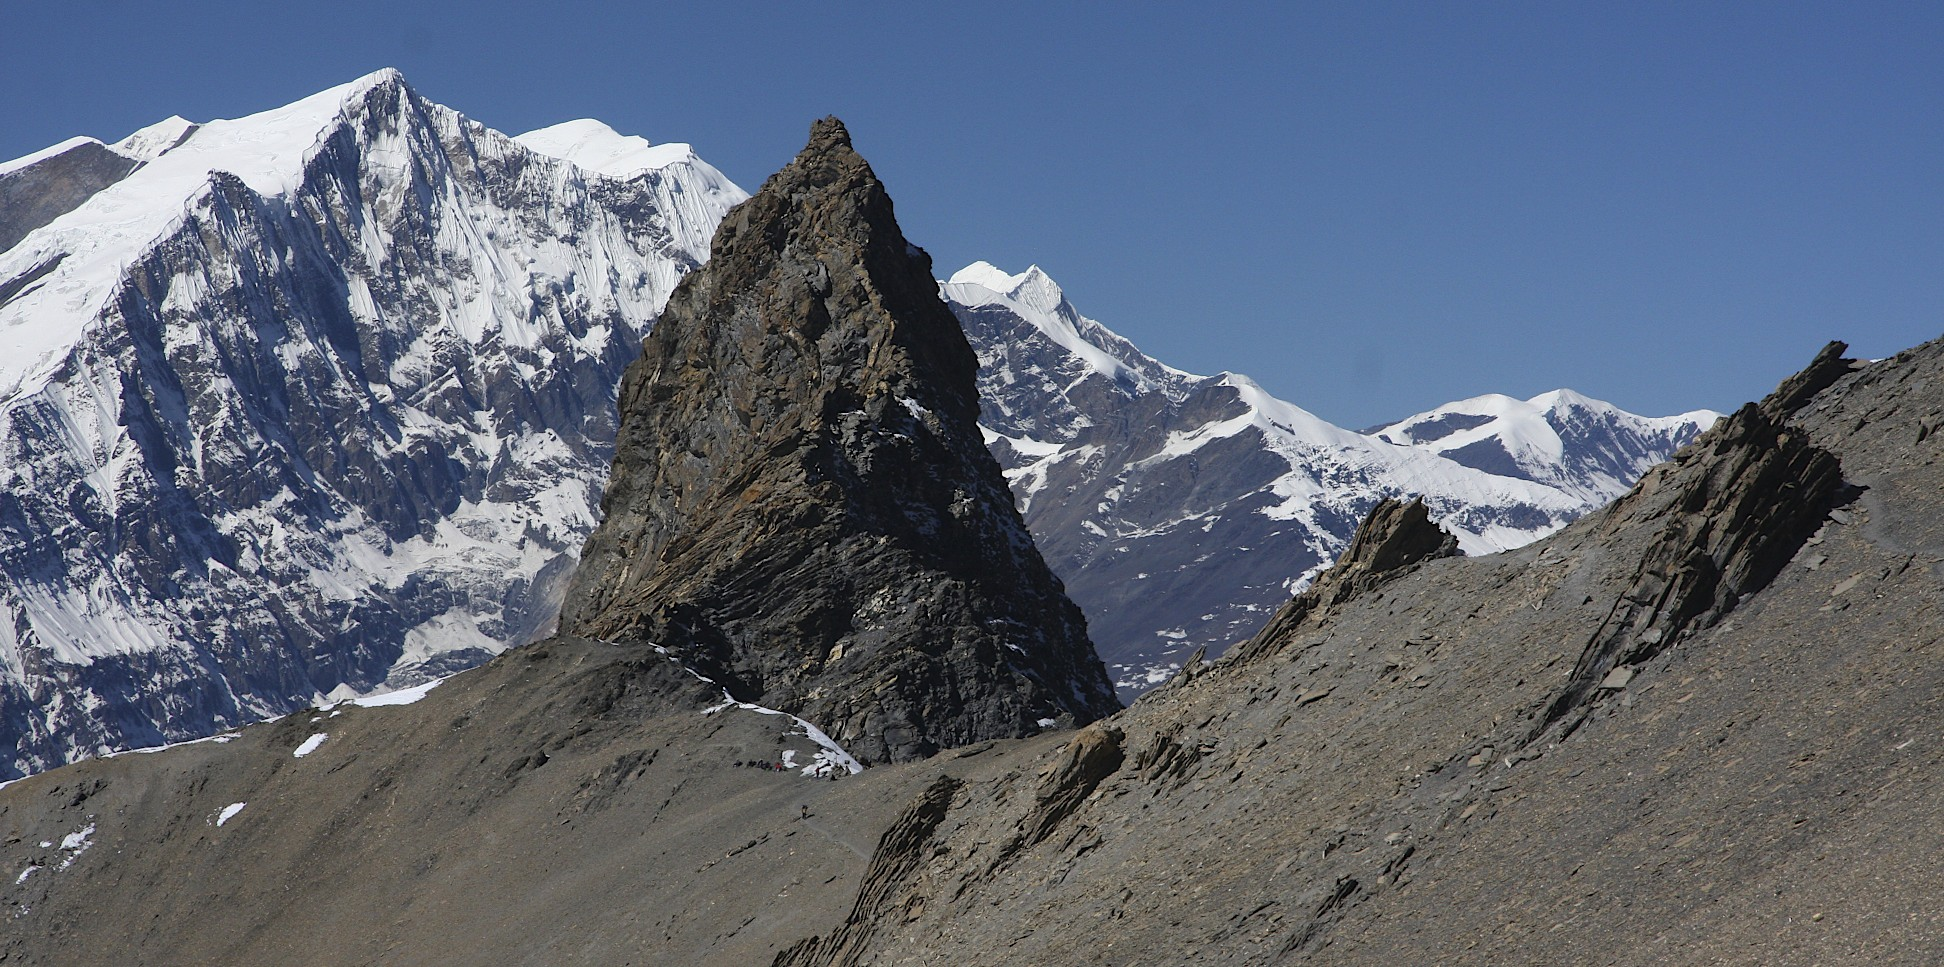 Mesocanto Pass and Tukche Peak behind